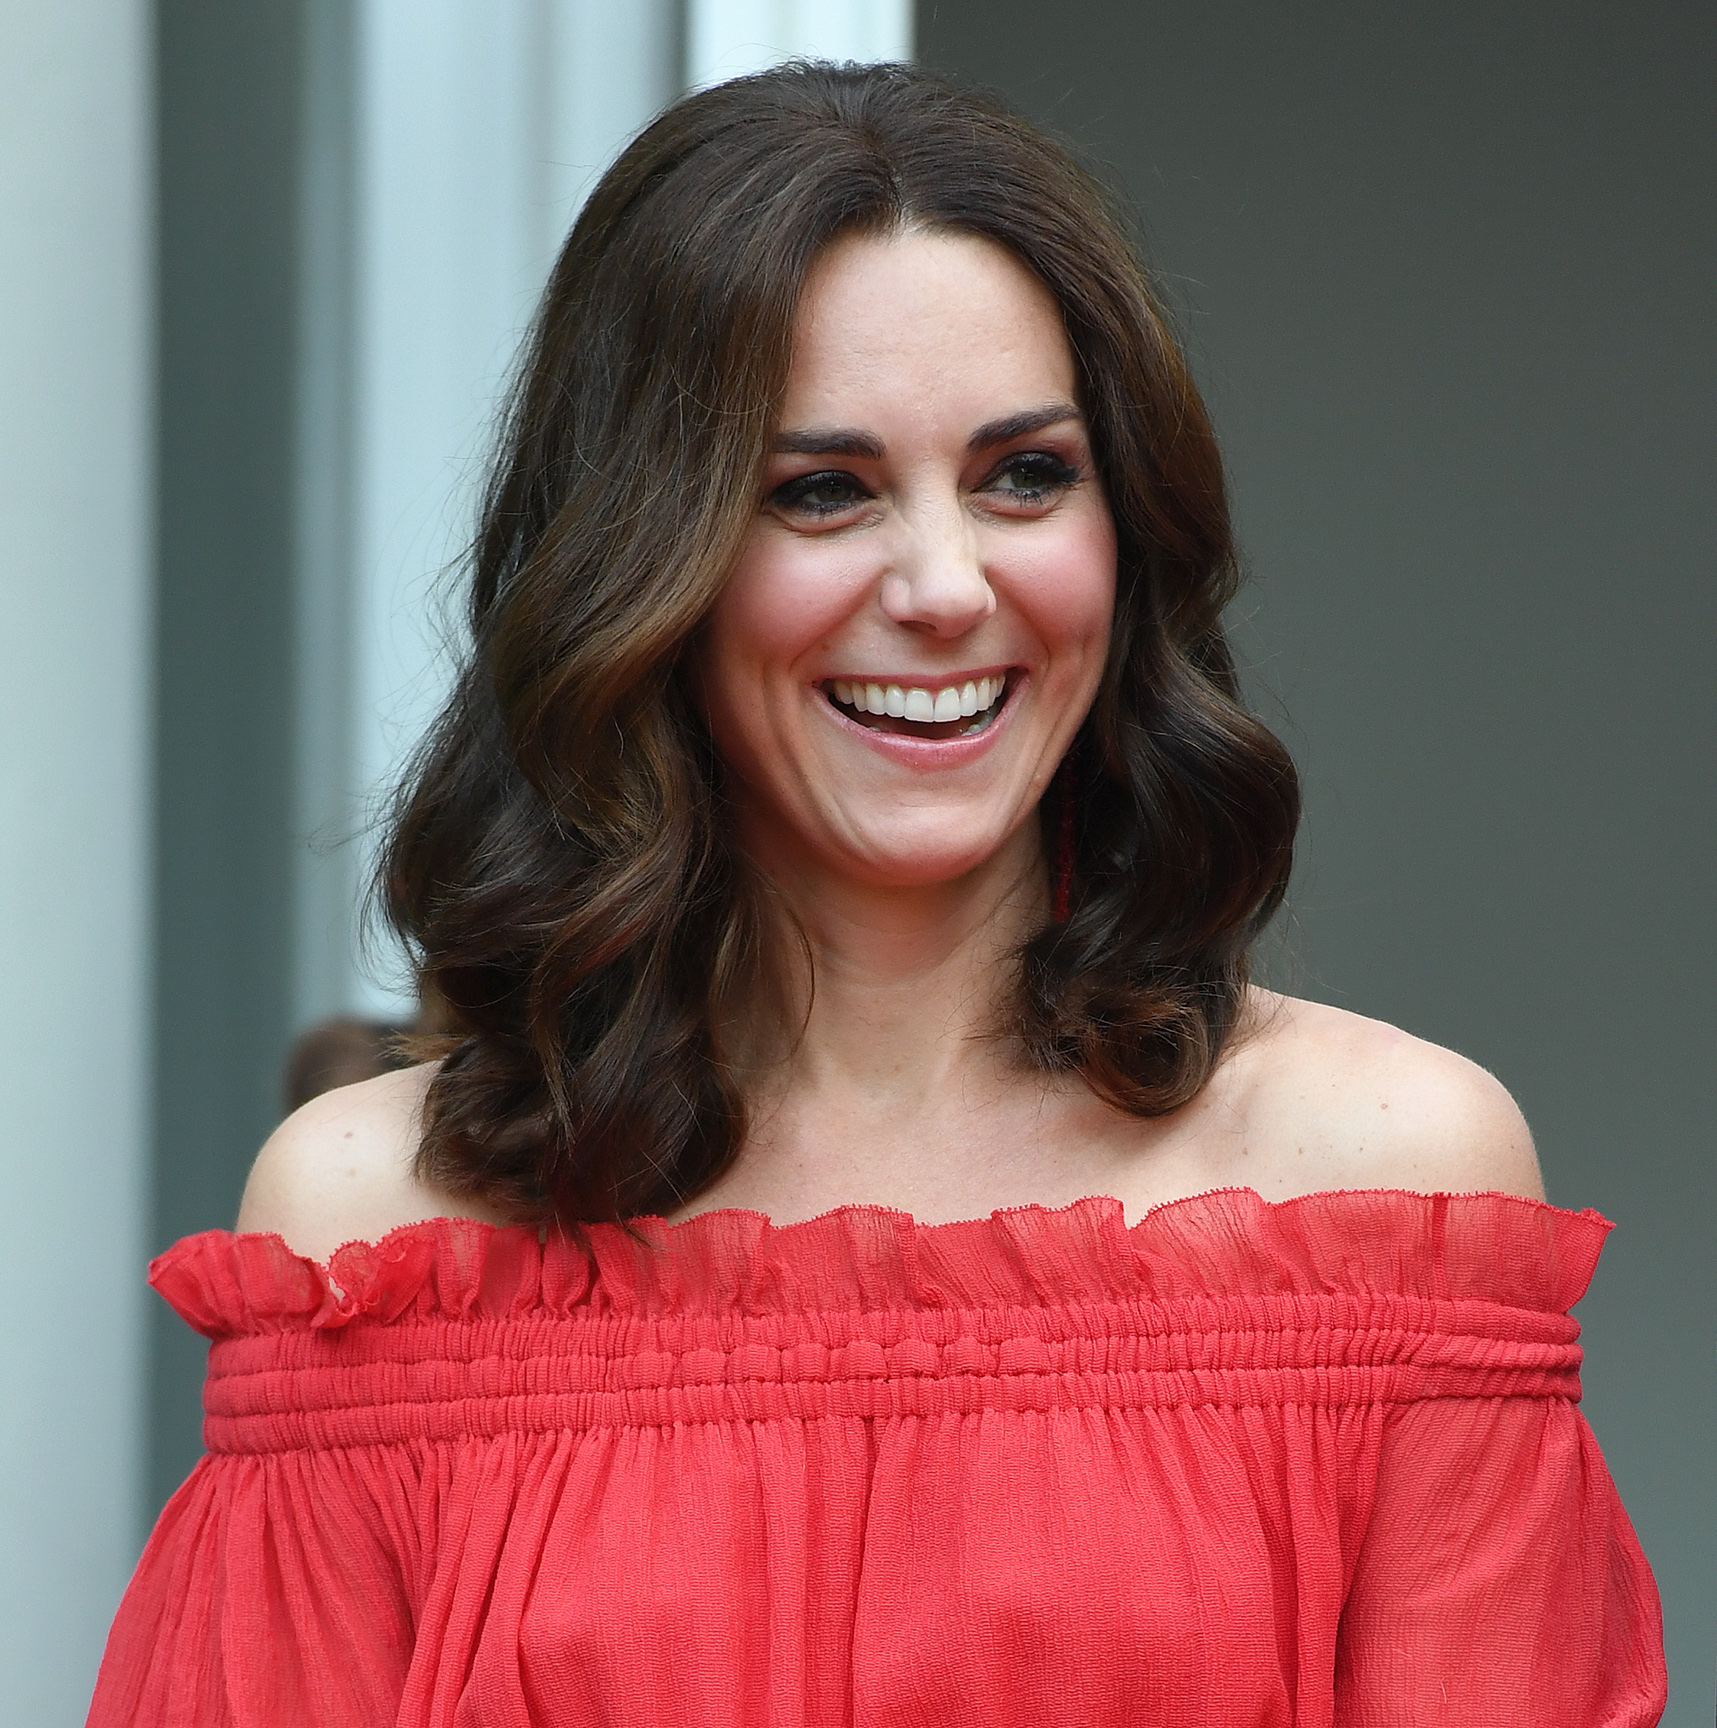 Kate Middleton's engraved necklace is a beautiful tribute to Princess Diana